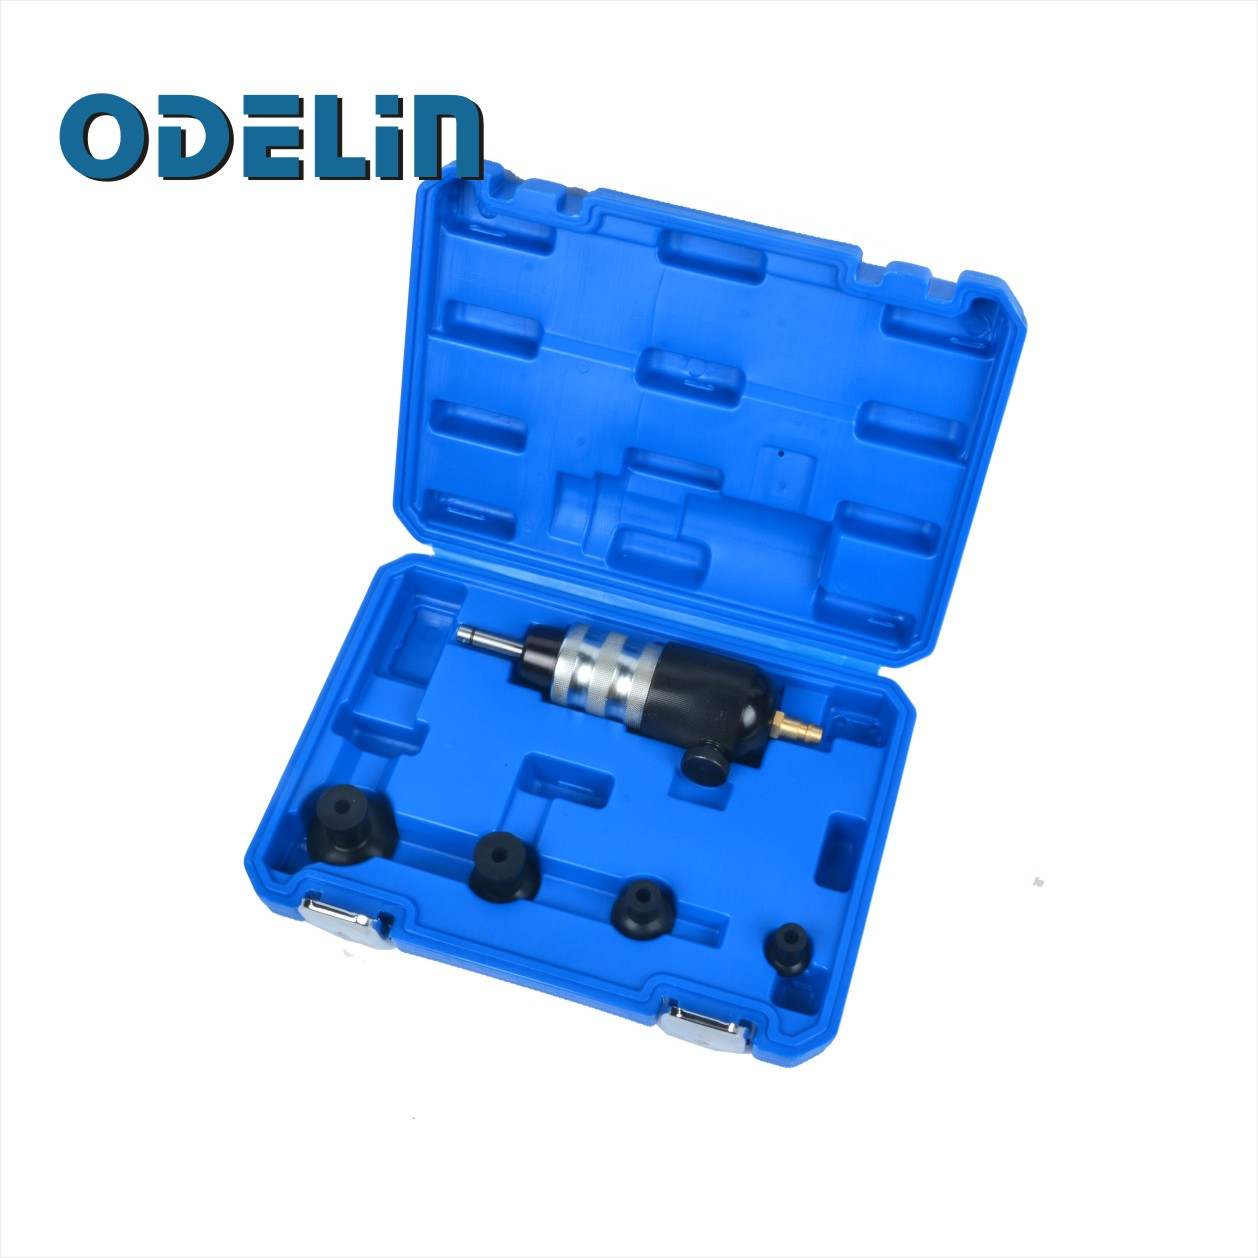 Air Operated Valve Lapping Grinding Tool Spin Valves Pneumatic Machine 1set high grade pneumatic valve grinding machine engine maintenance tool for automobile engine